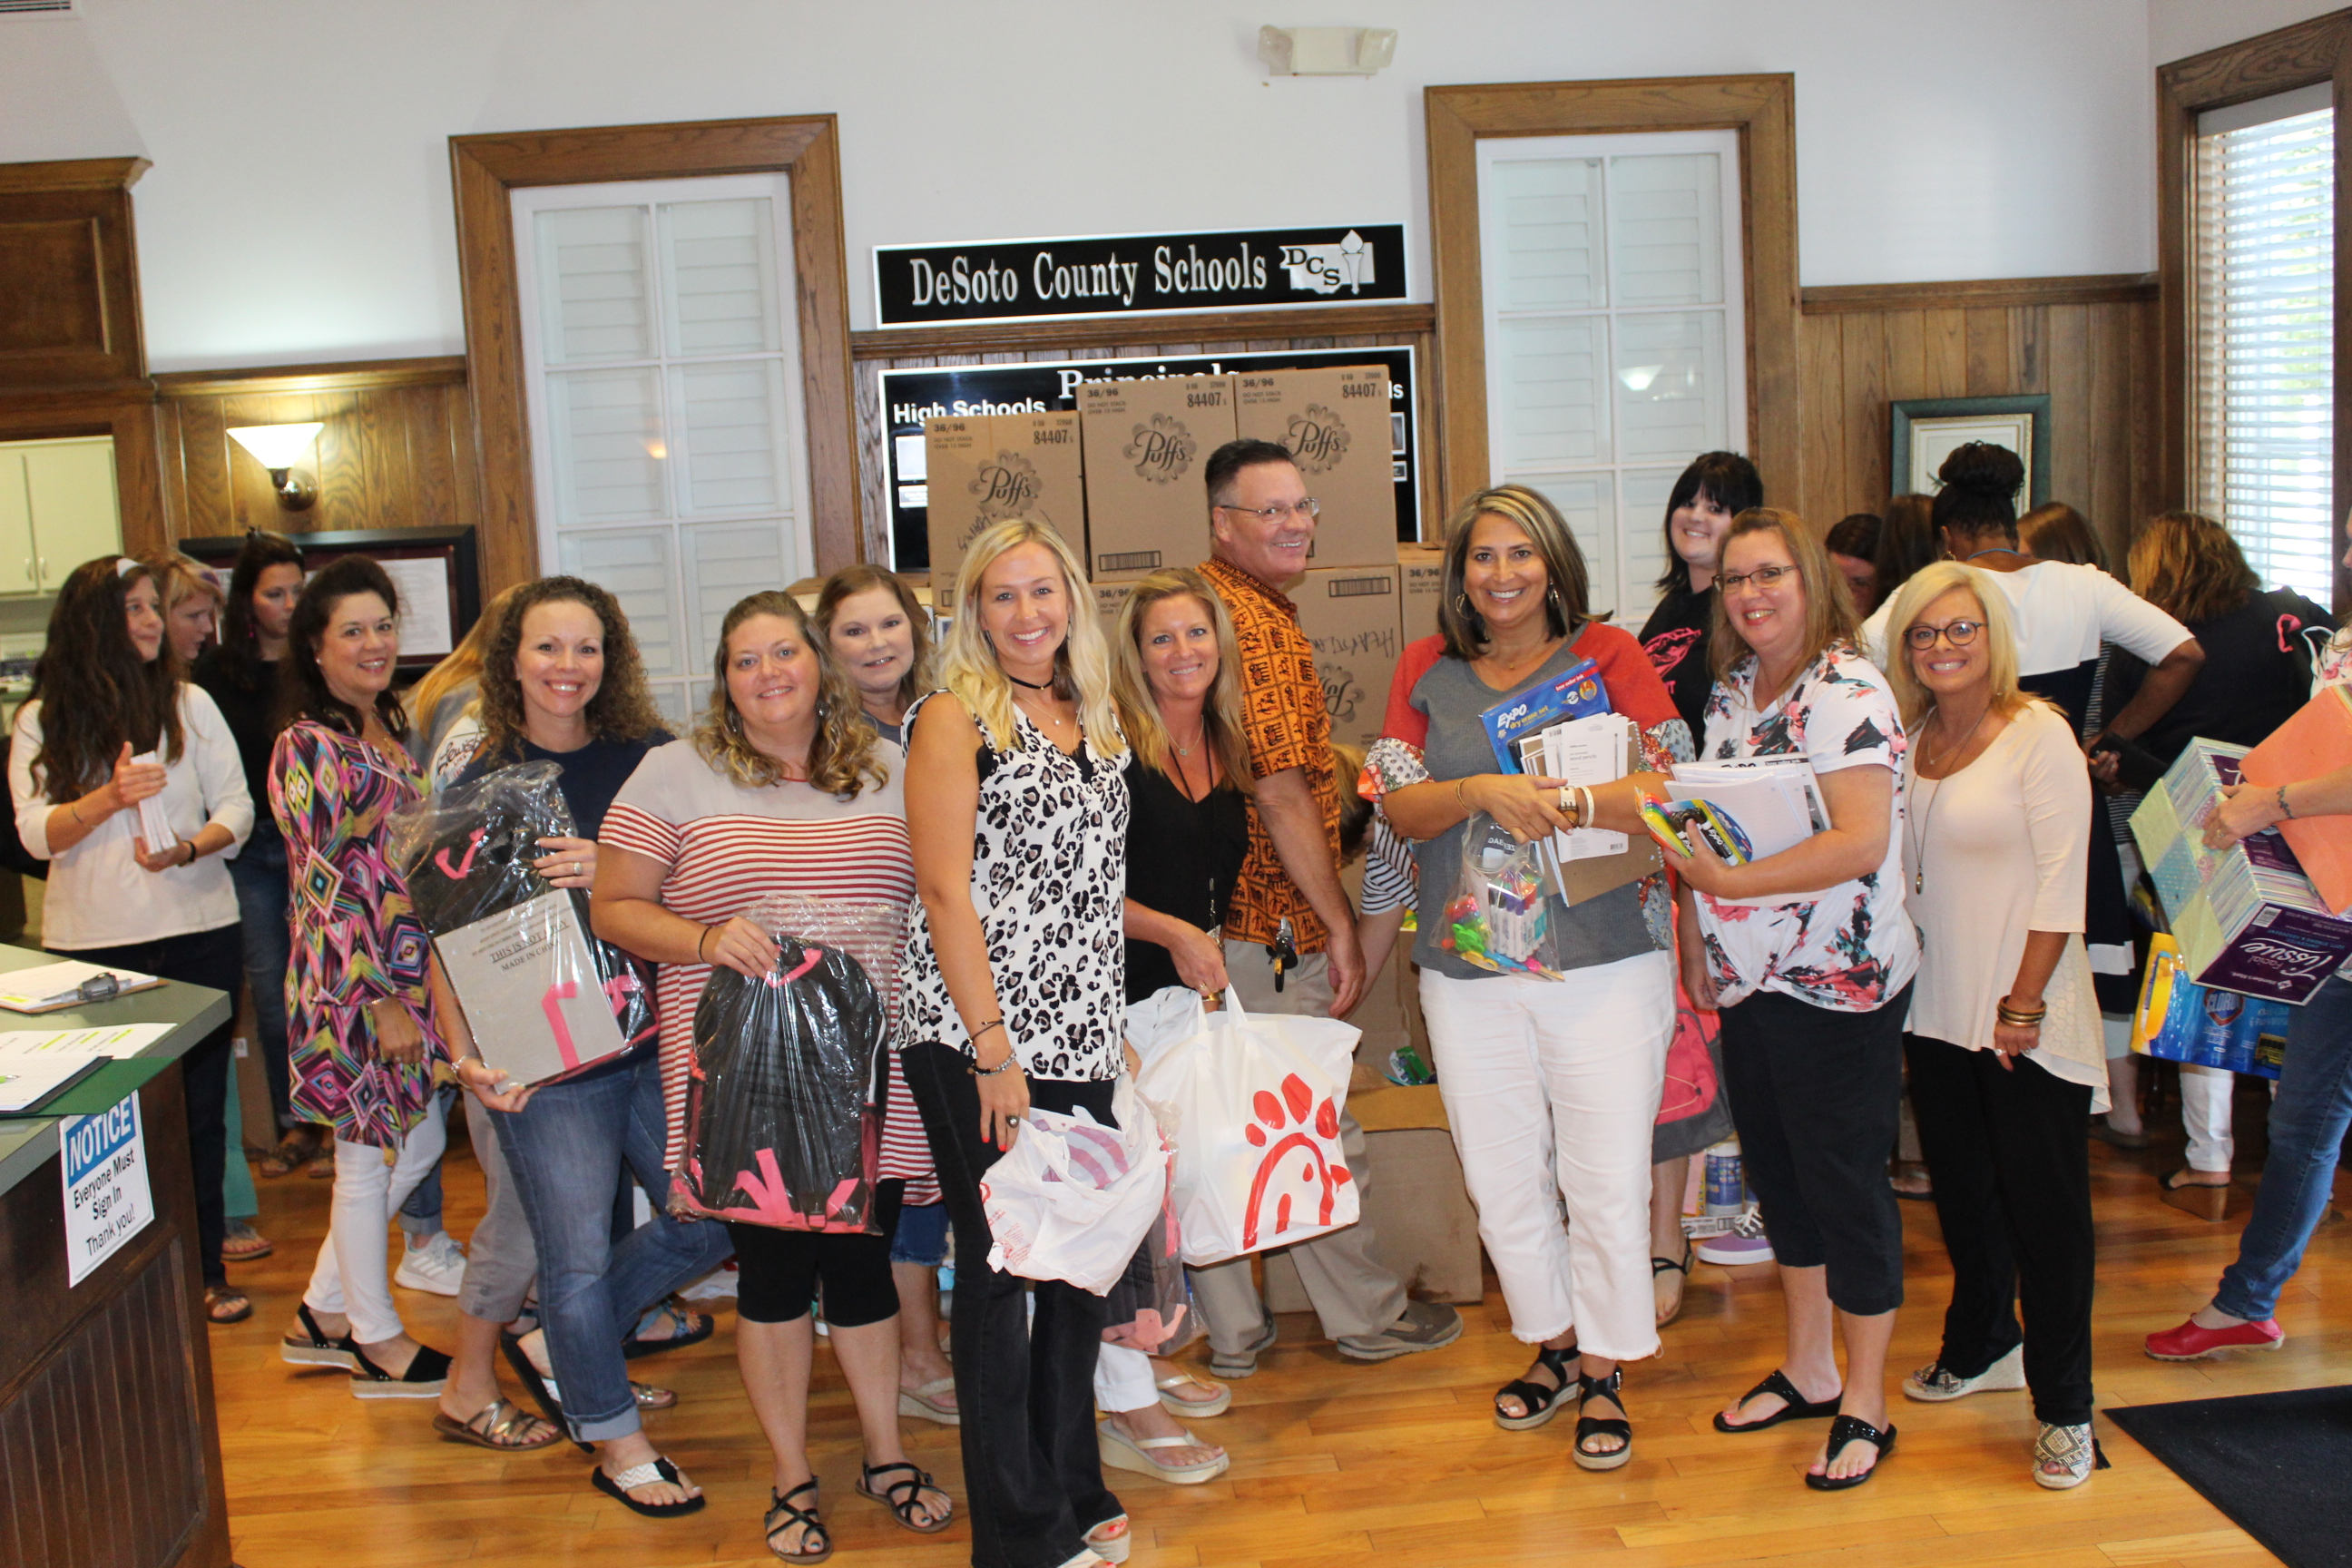 Teachers gathered school supplies that were donated by Chick-fil-A to take to their schools.